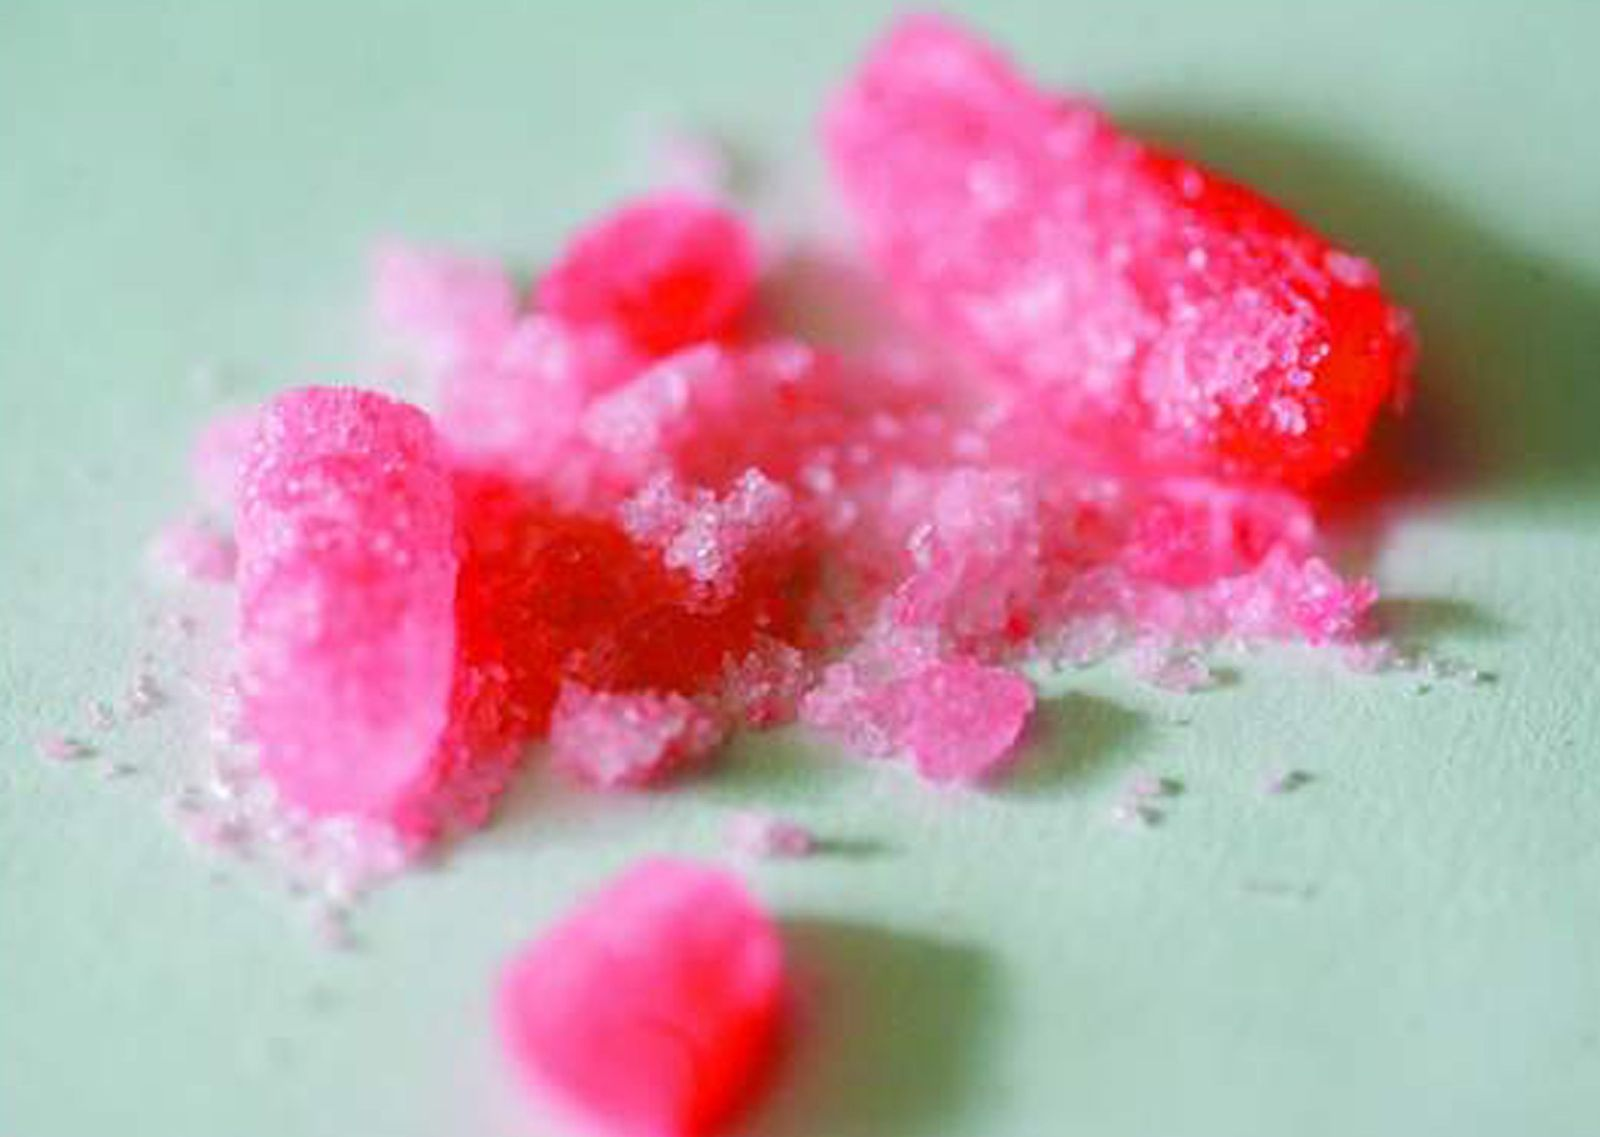 Strawberry Flavored Meth